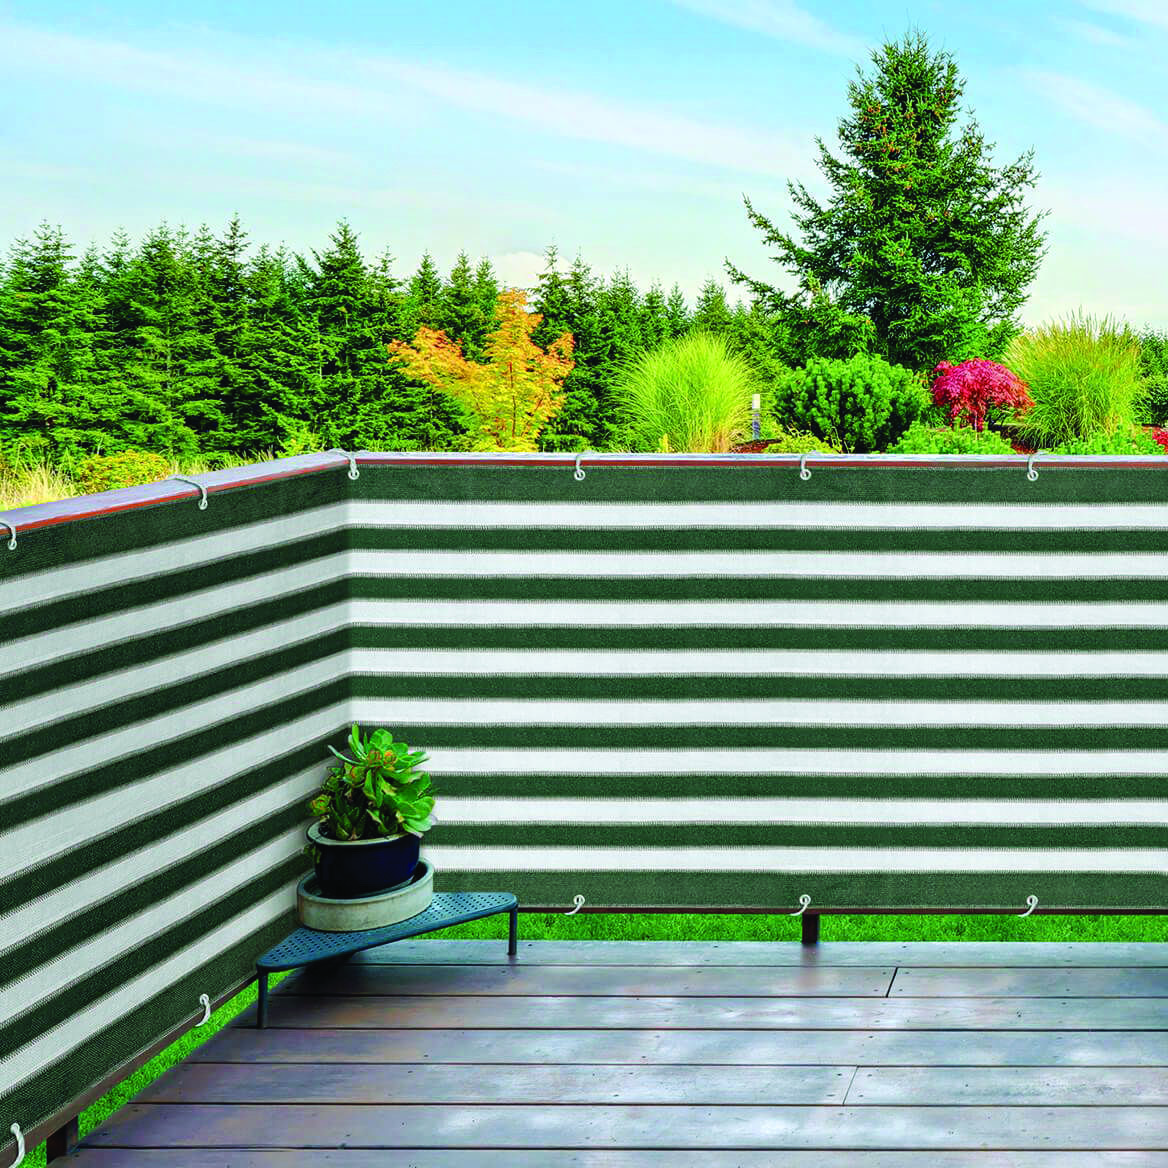 Cozy outdoor privacy screen lowes canada for your home #balconyprivacyscreen